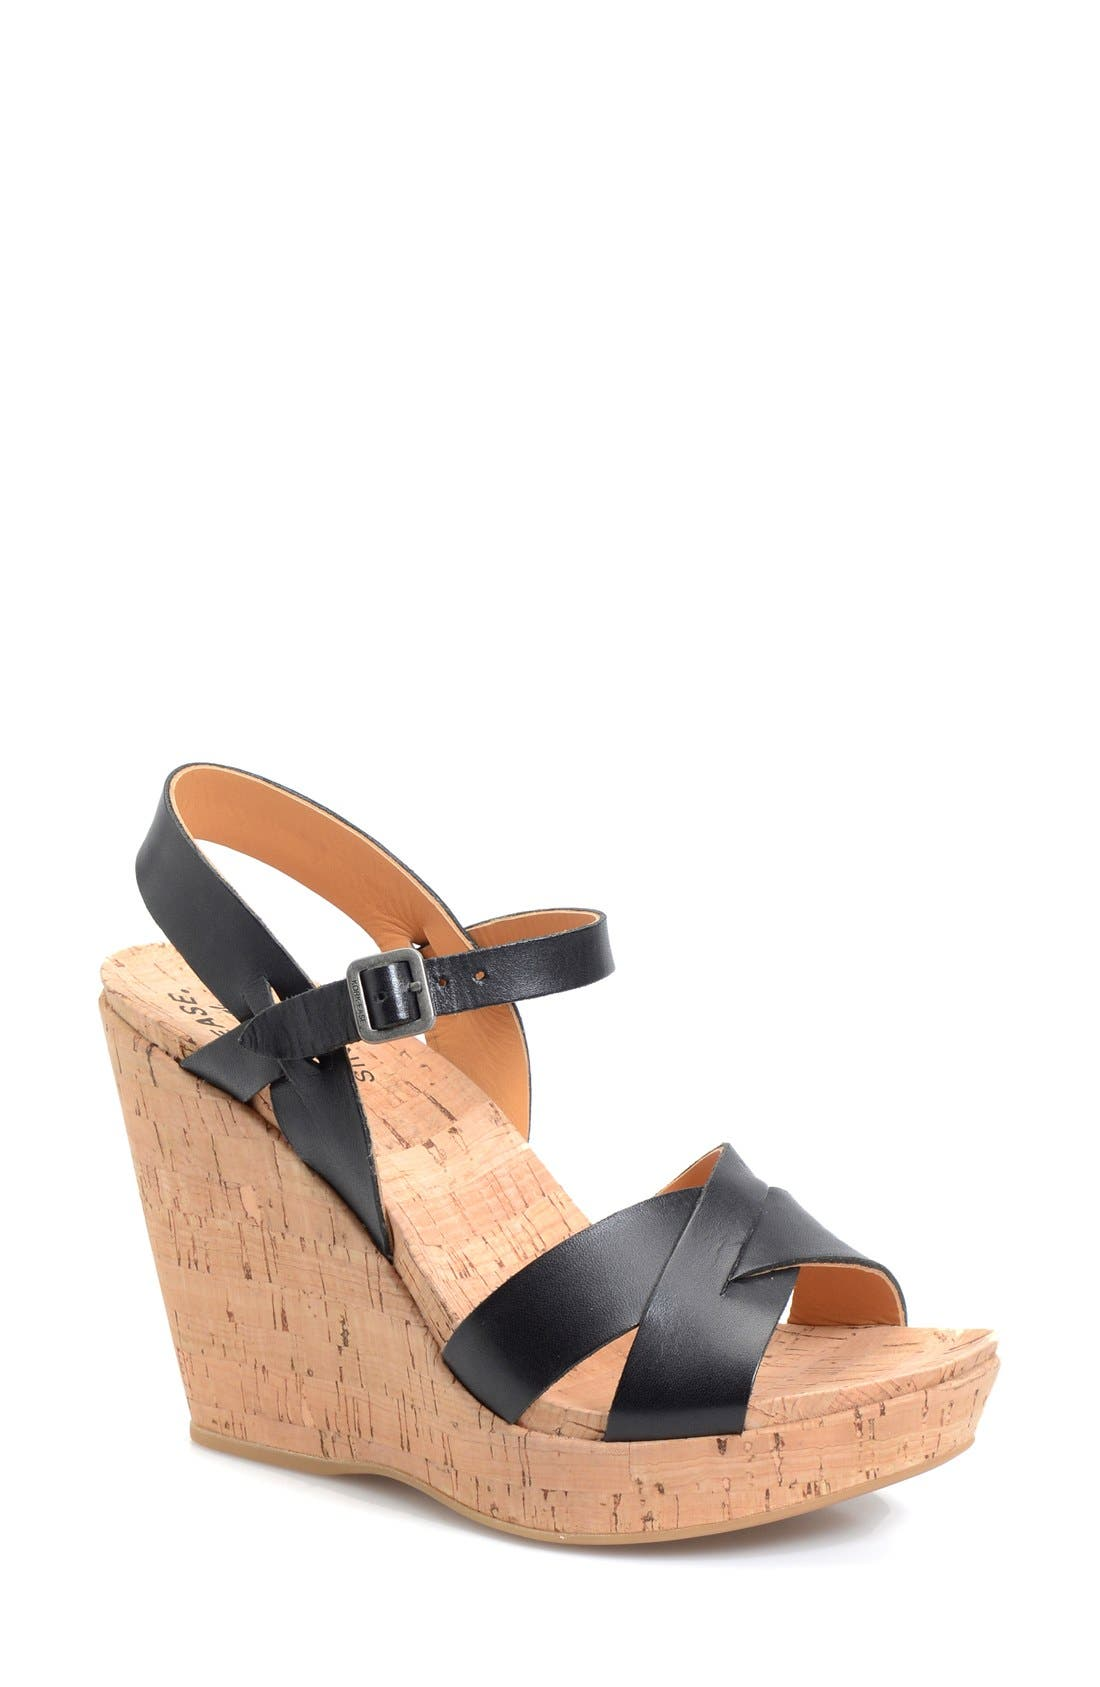 Main Image - Kork-Ease® 'Bette' Cork Wedge (Women)